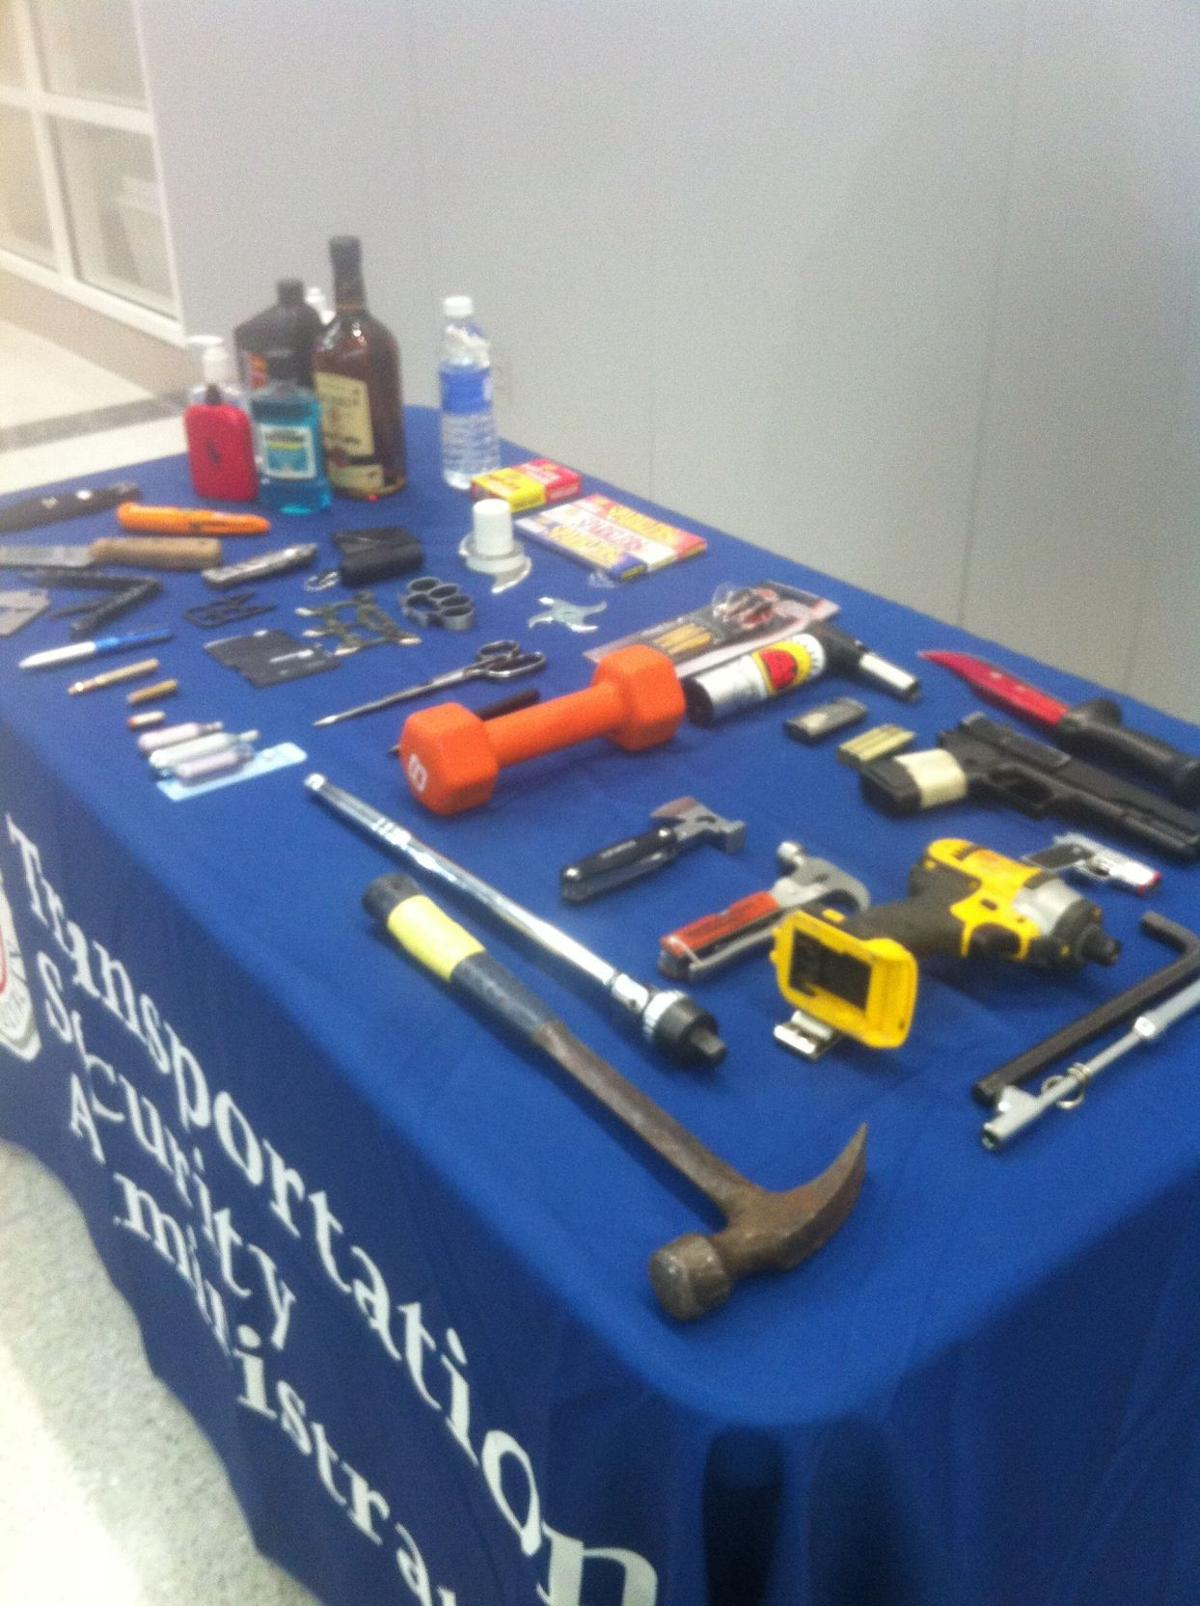 TSA to display prohibited items found on local airport passengers